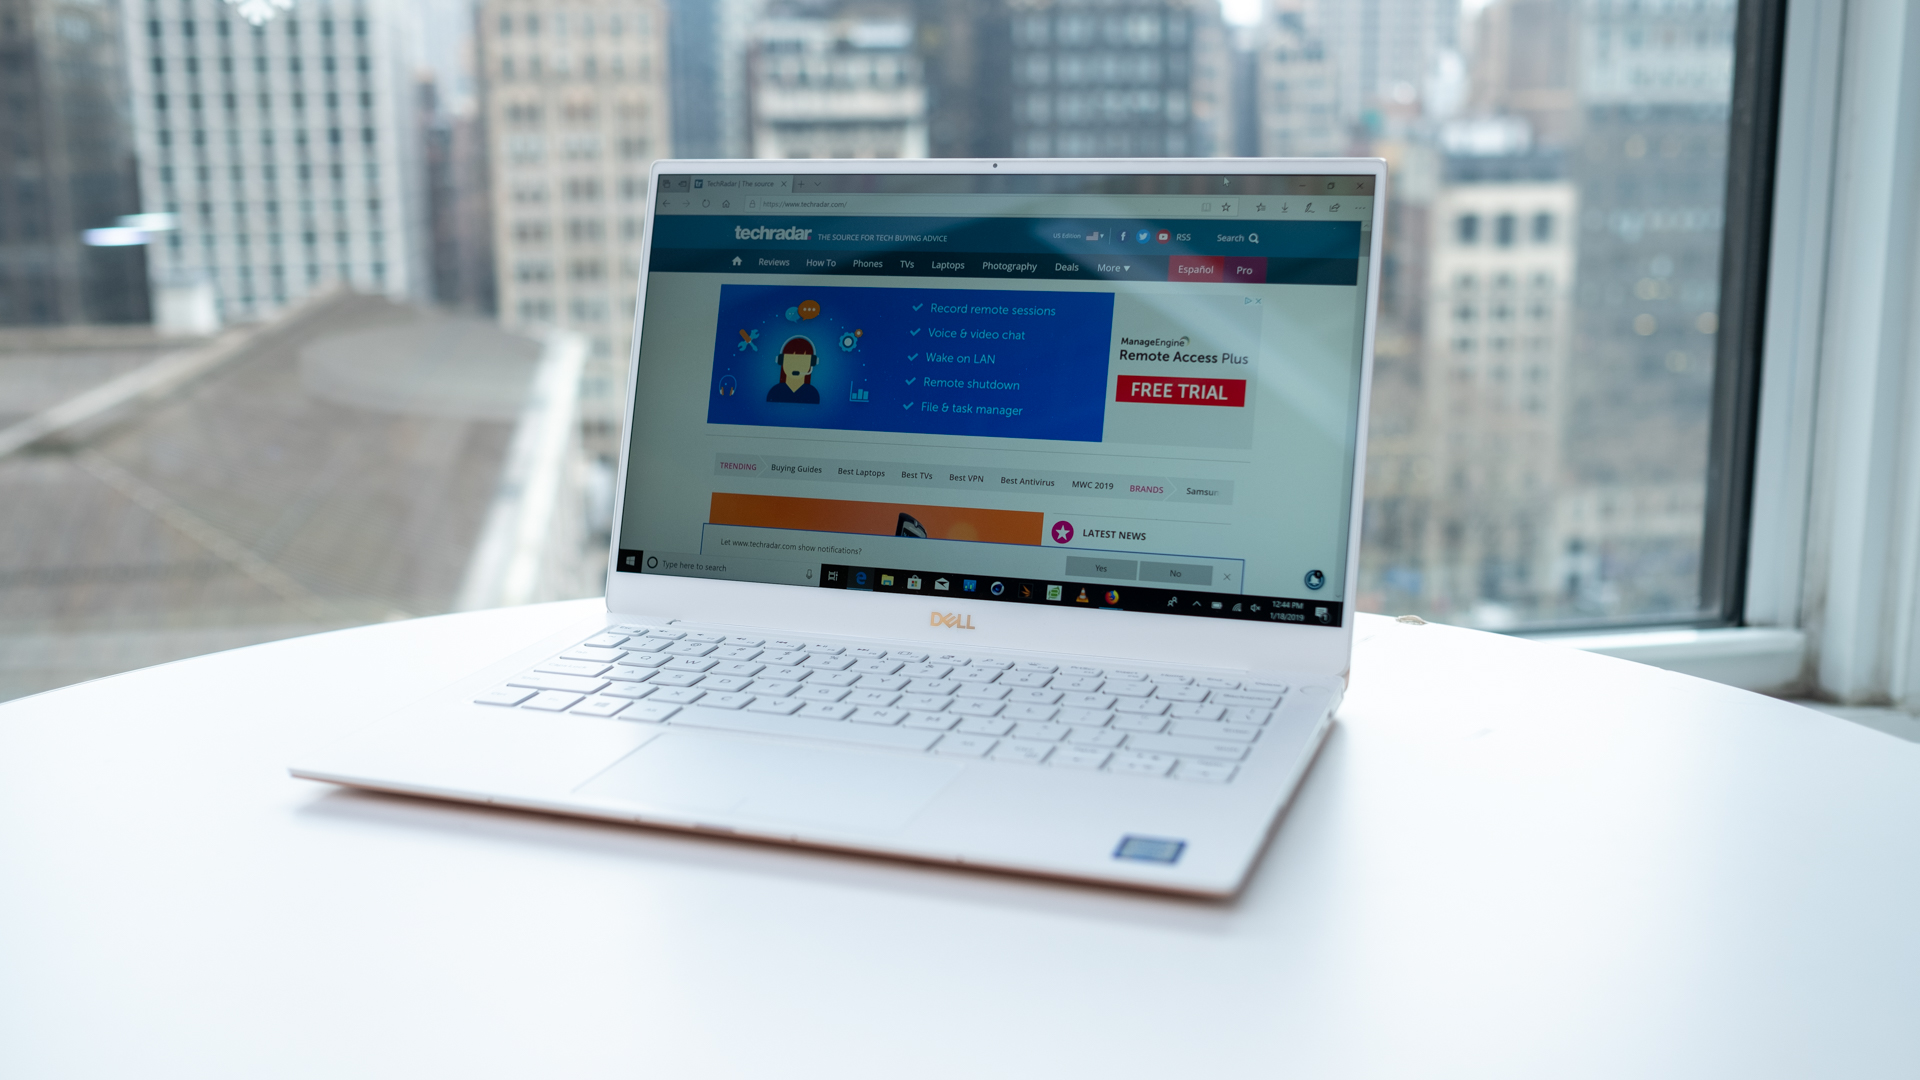 Best Laptop For Documents And Movies